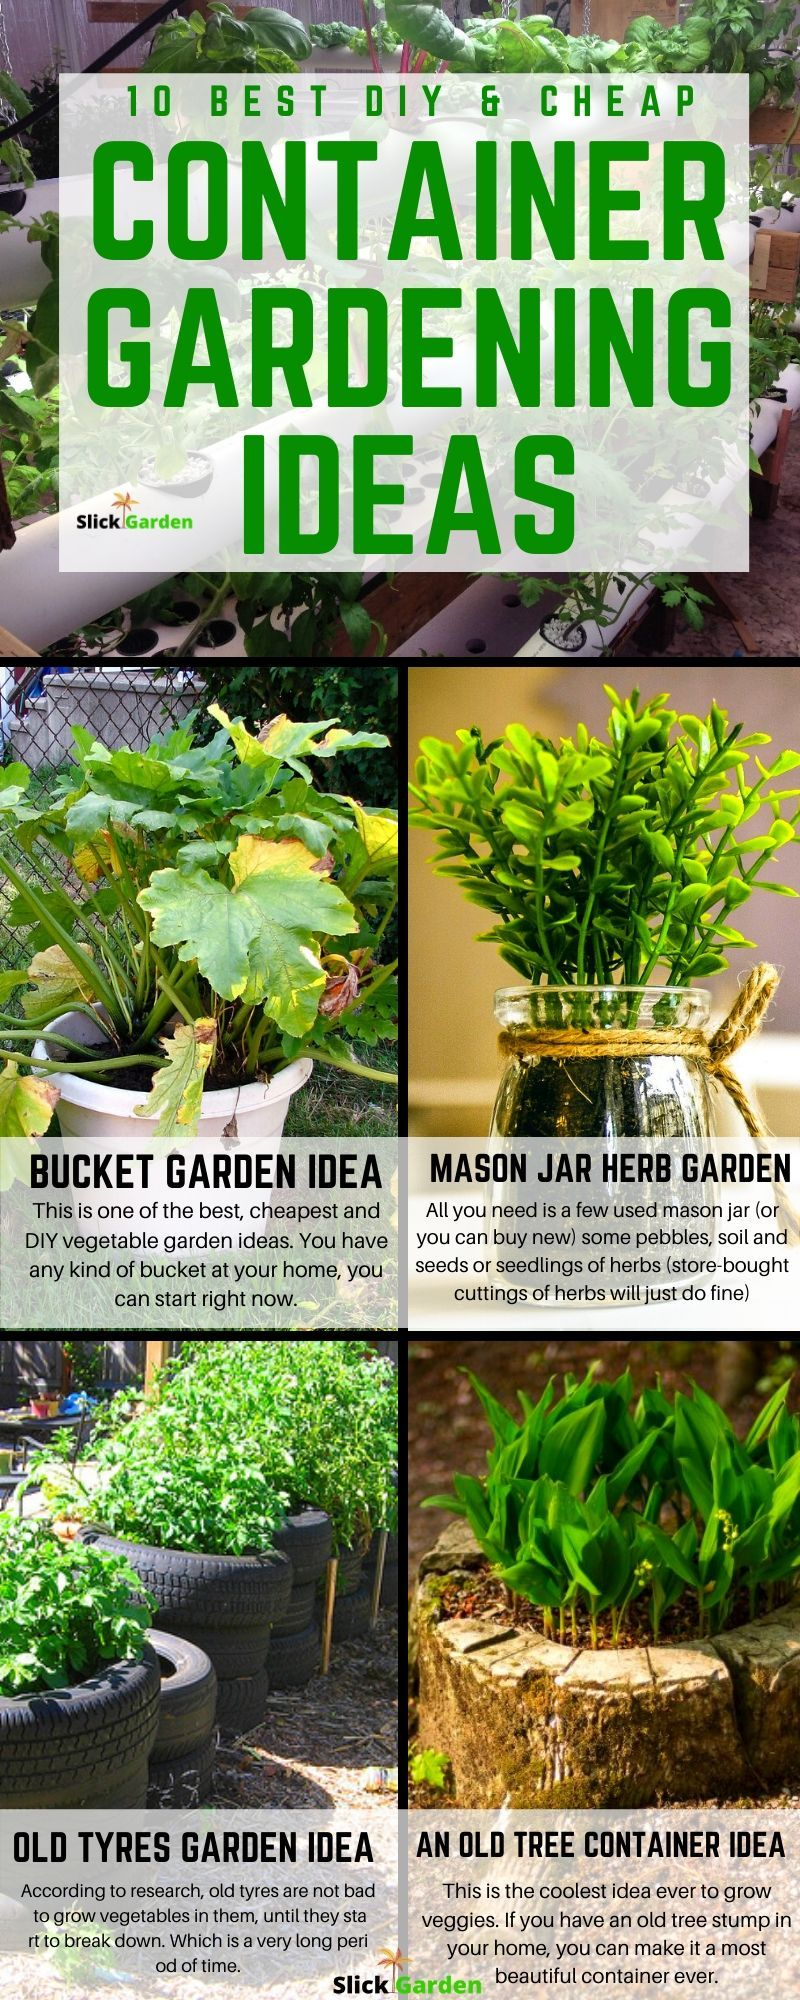 12fd43c3f09013462eada30d191ca7a8 - Best Soil To Use For Container Gardening